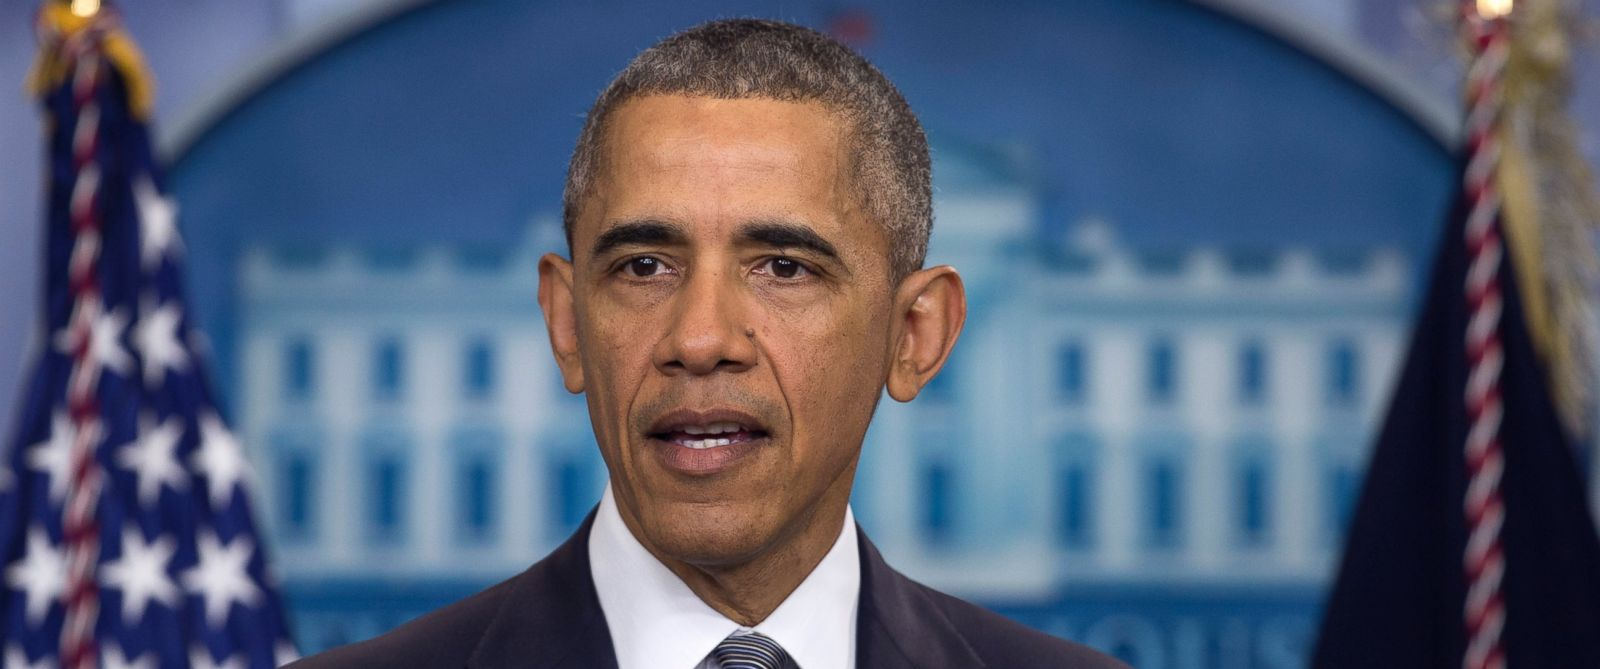 Obama: Police Can Be Safer By Admitting Their Failures